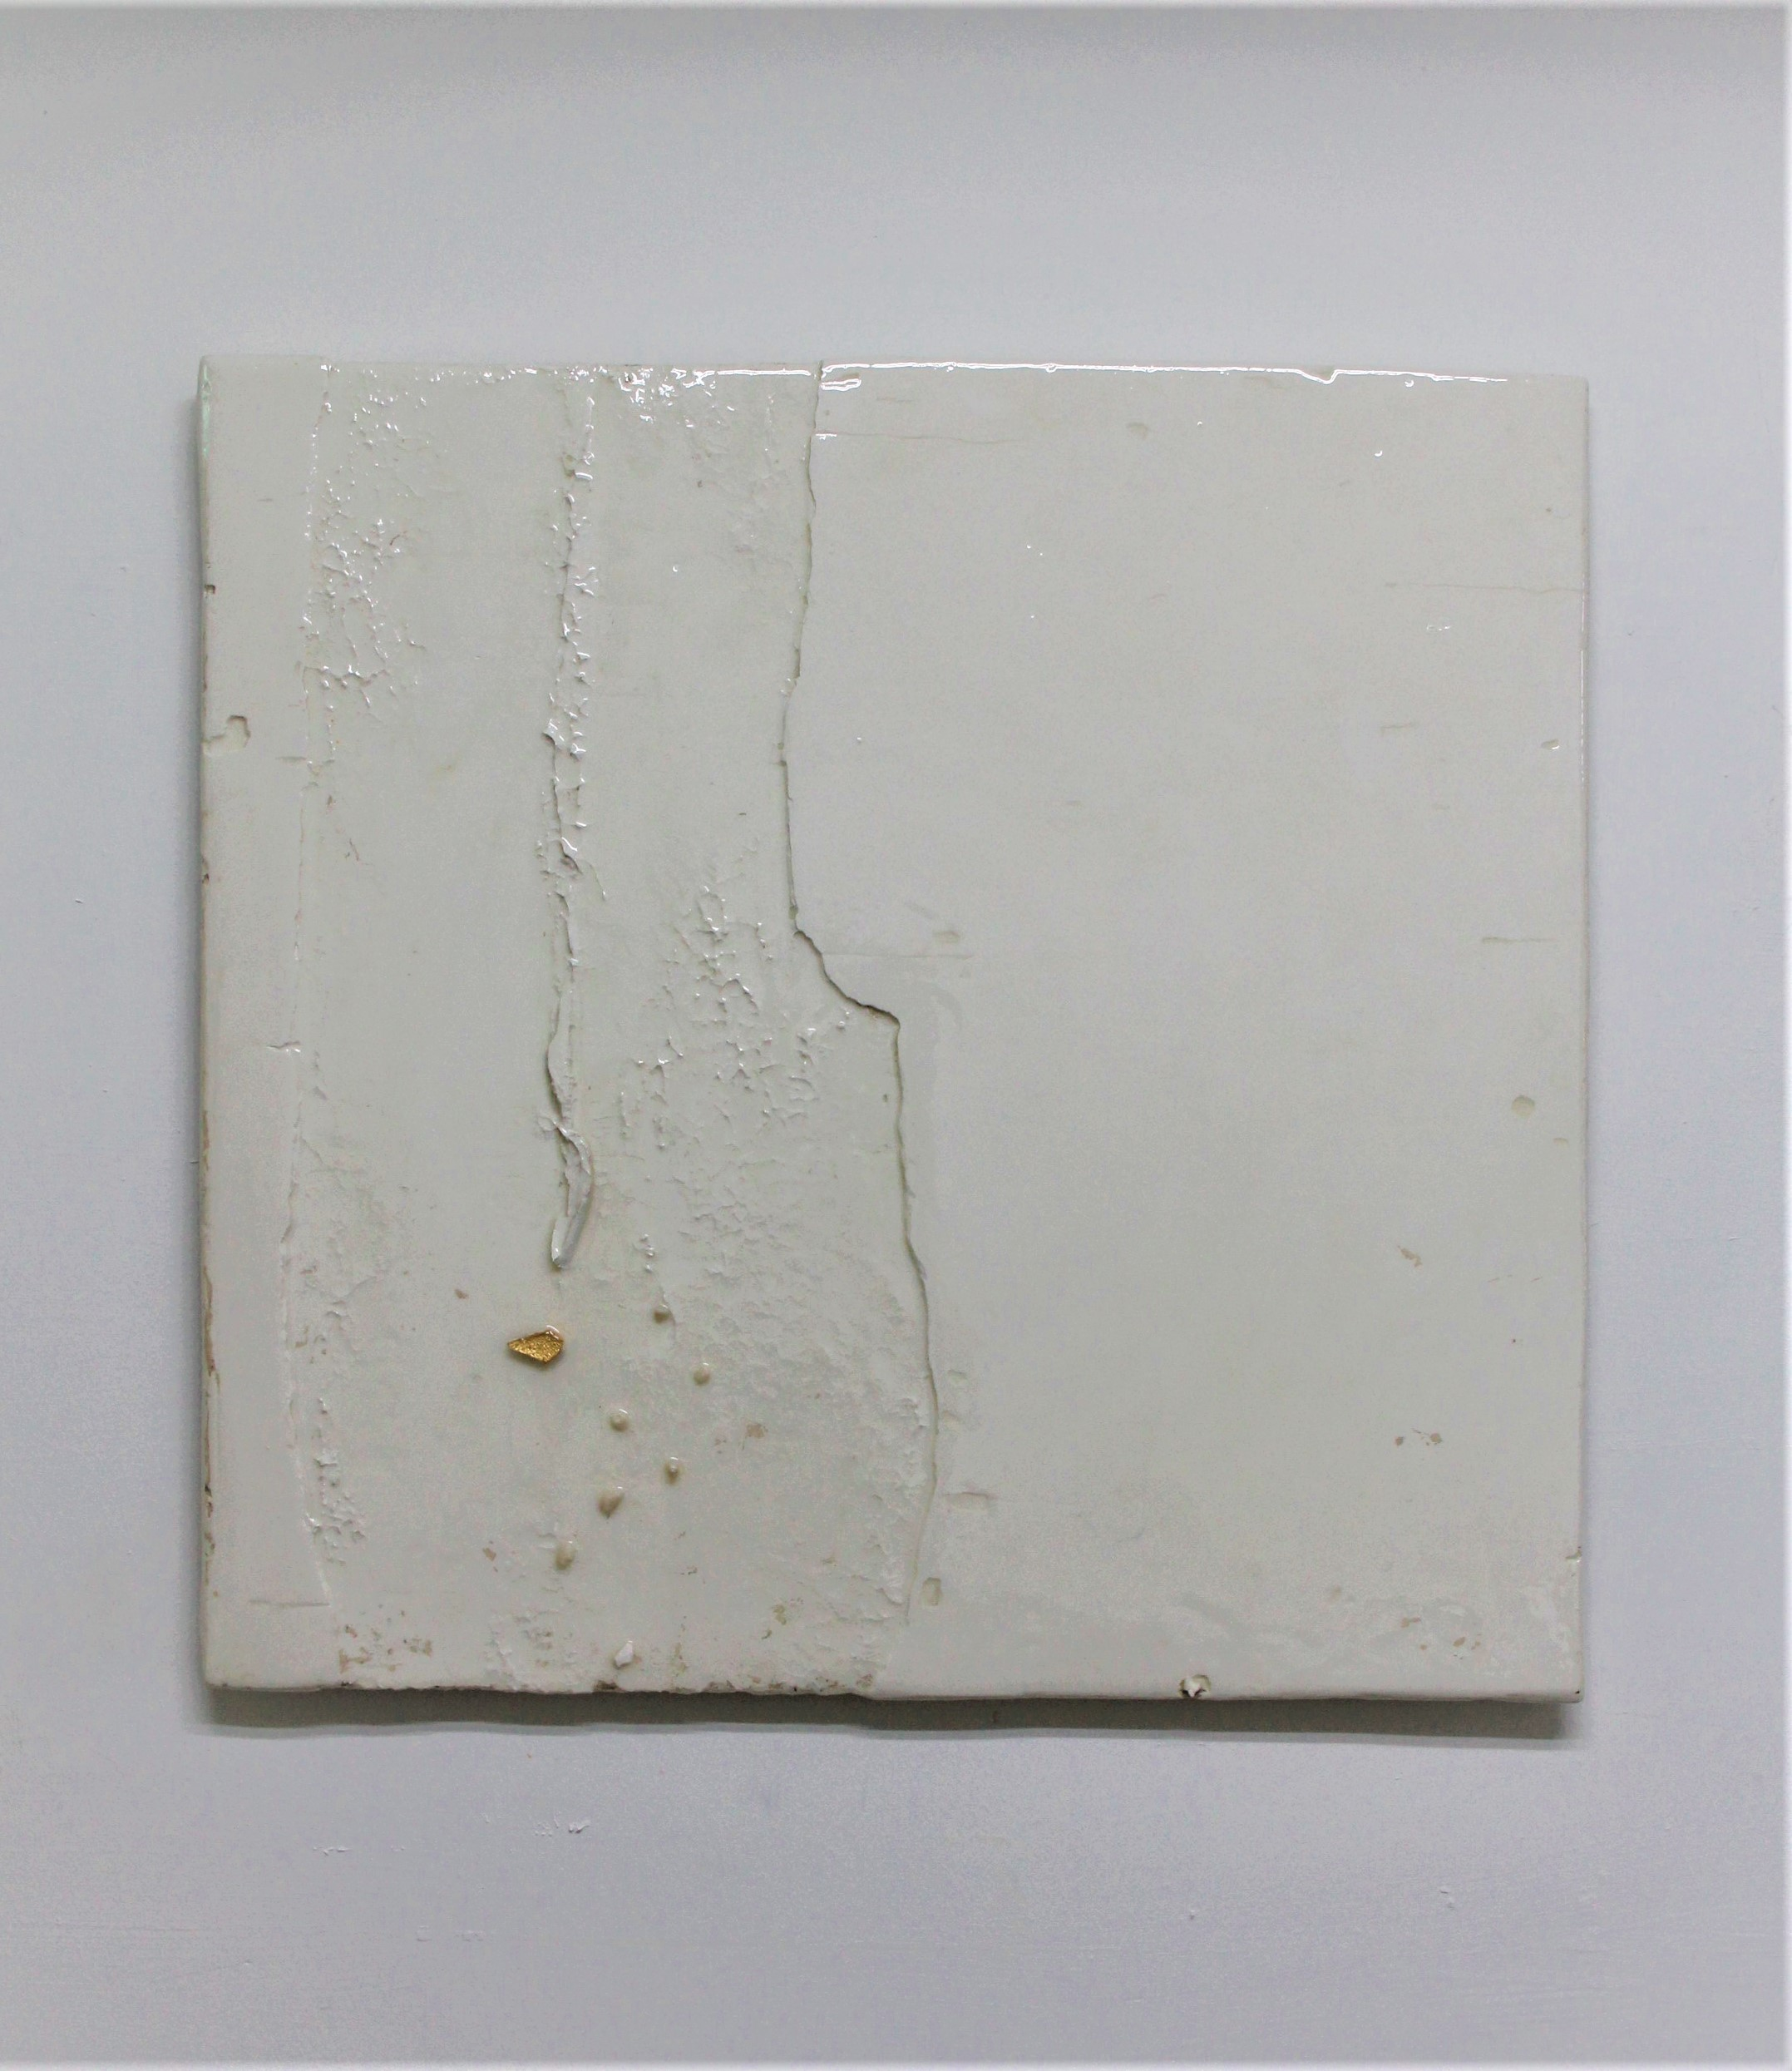 Appendix 6, 2019, Resinated Gypsum Plaster and Gold Leaf on Wood, 68 x 70 cm.jpg